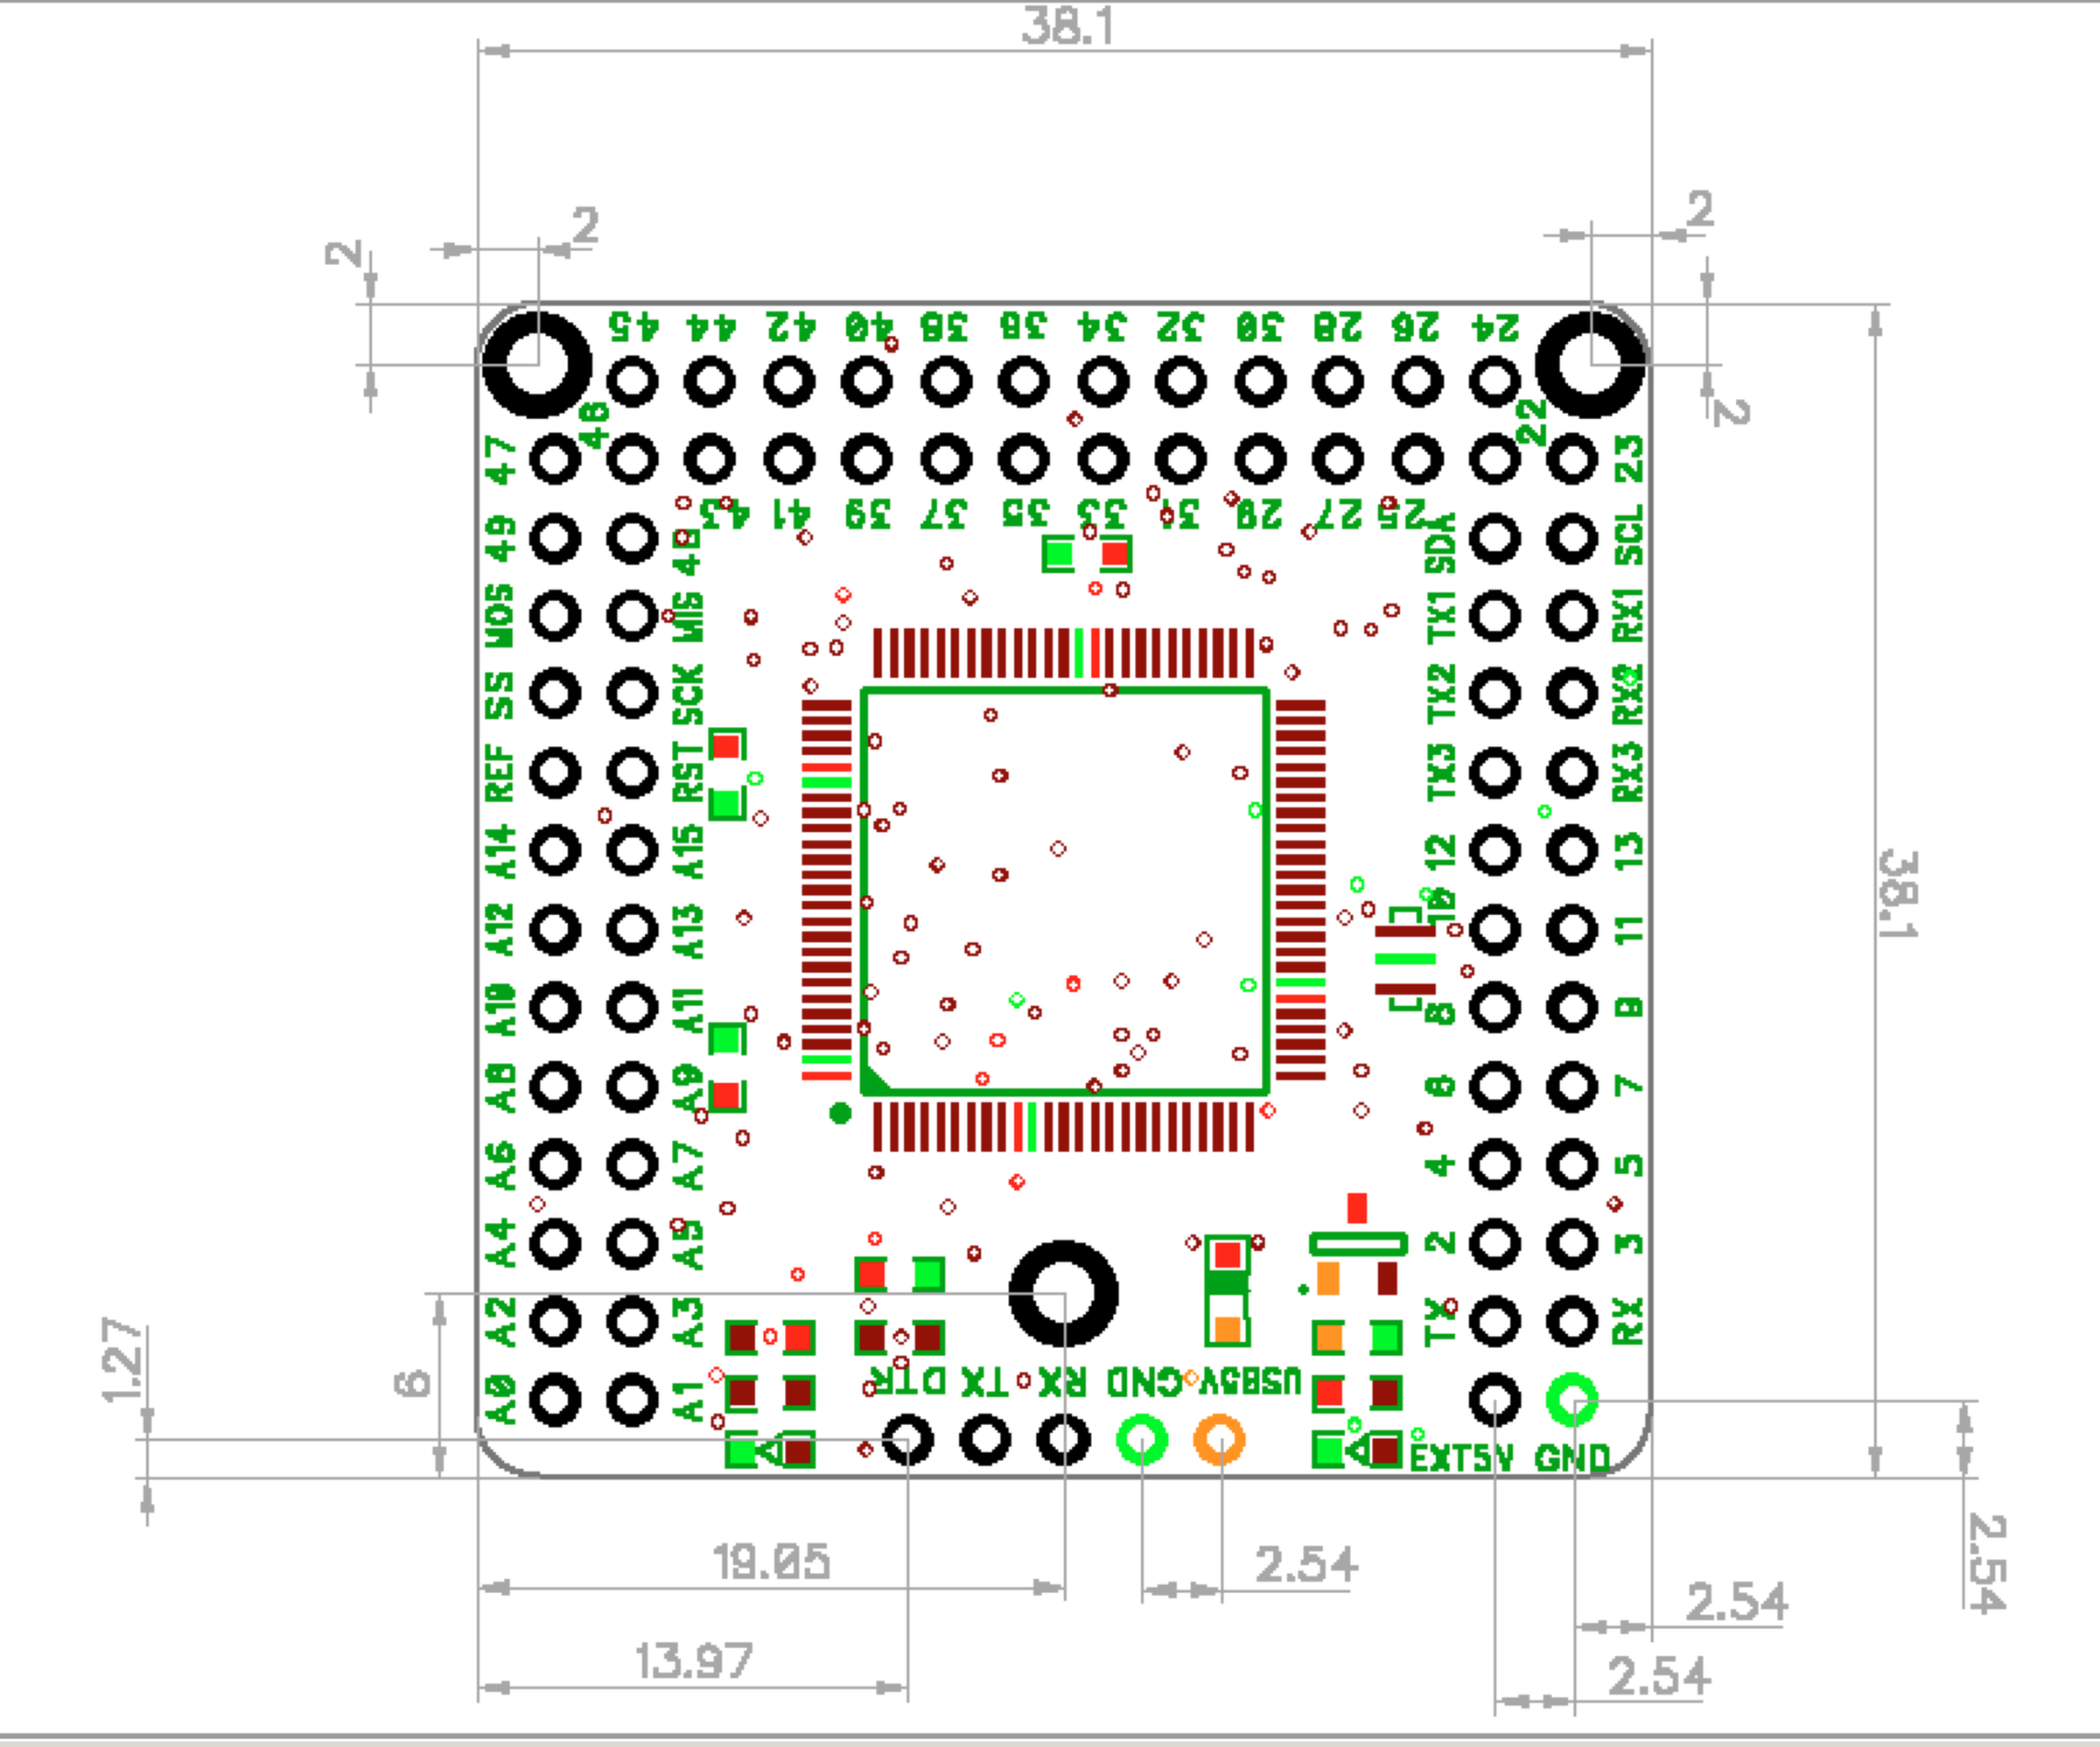 Mega, an Arduino Mega 2560 compatible board from FuzzyStudio ... on arduino microcontroller schematic, arduino mega 2560 pin mapping, arduino mega case, arduino mega specs, arduino mega 2560 datasheet, arduino mega 2560 programming, arduino schematic symbol, arduino speaker schematic, arduino r3 schematic, arduino mega 2560 led, arduino pro schematic, arduino mega adk, breadboard arduino schematic, arduino mega 2560 map, arduino uno schematic, arduino ethernet schematic, arduino nano schematic, arduino mega size, arduino mega 2560 board, arduino mega layout,